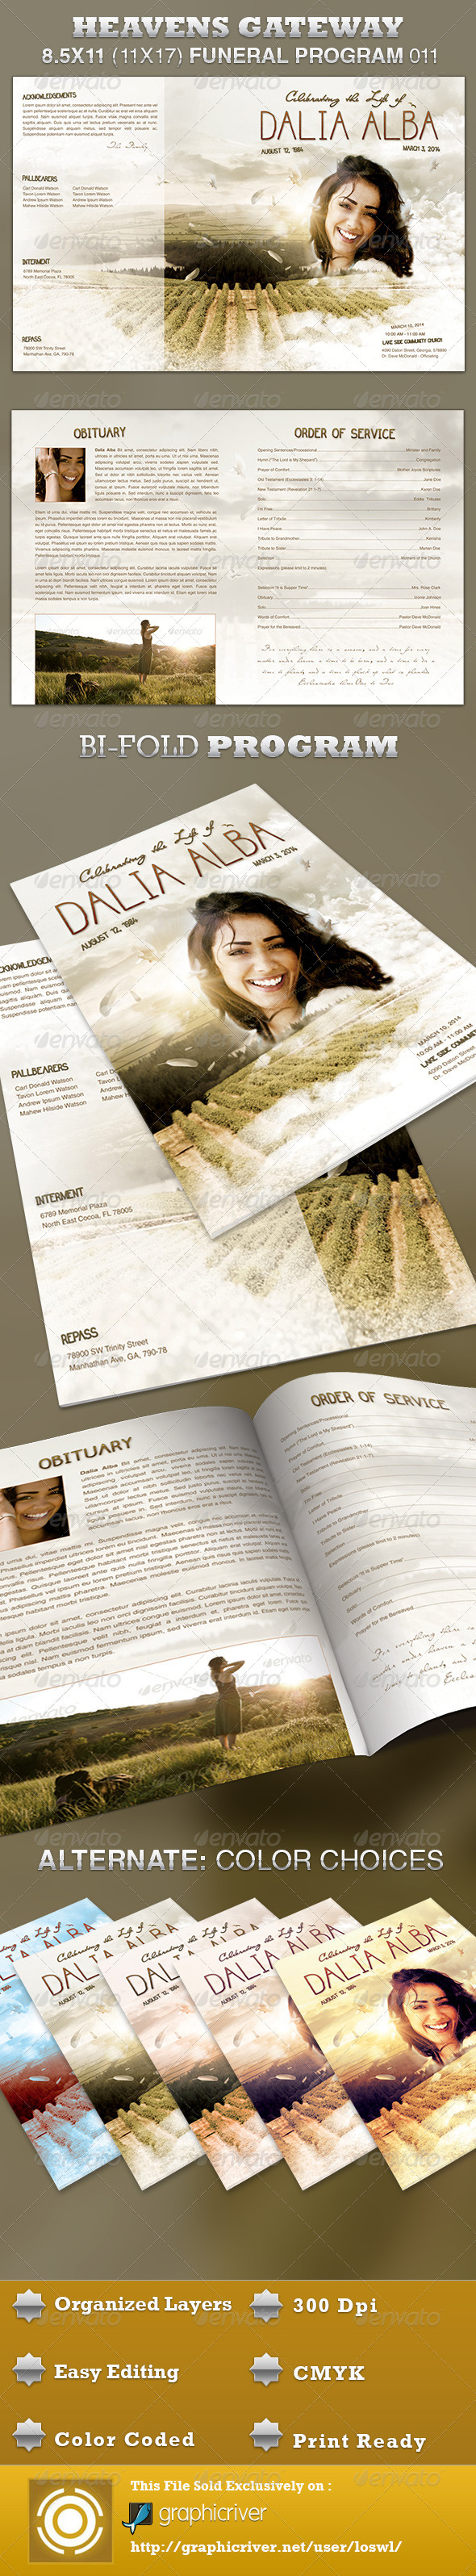 Heavens Gateway Funeral Program Template 011 - Informational Brochures